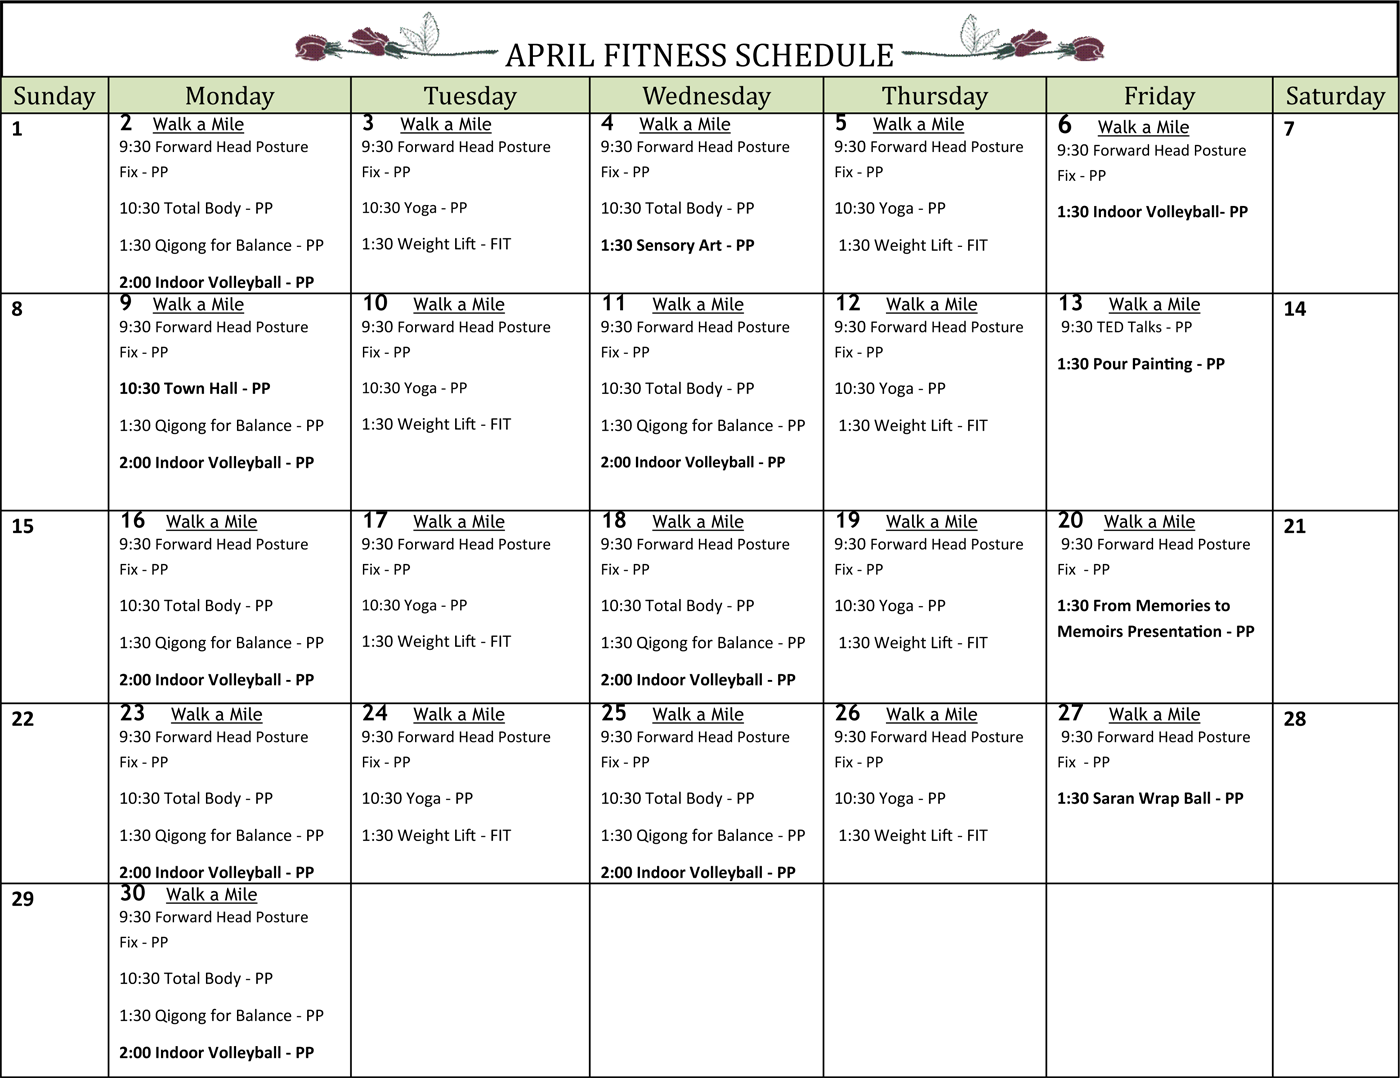 April_2018_WELLNESS_Calendar-1